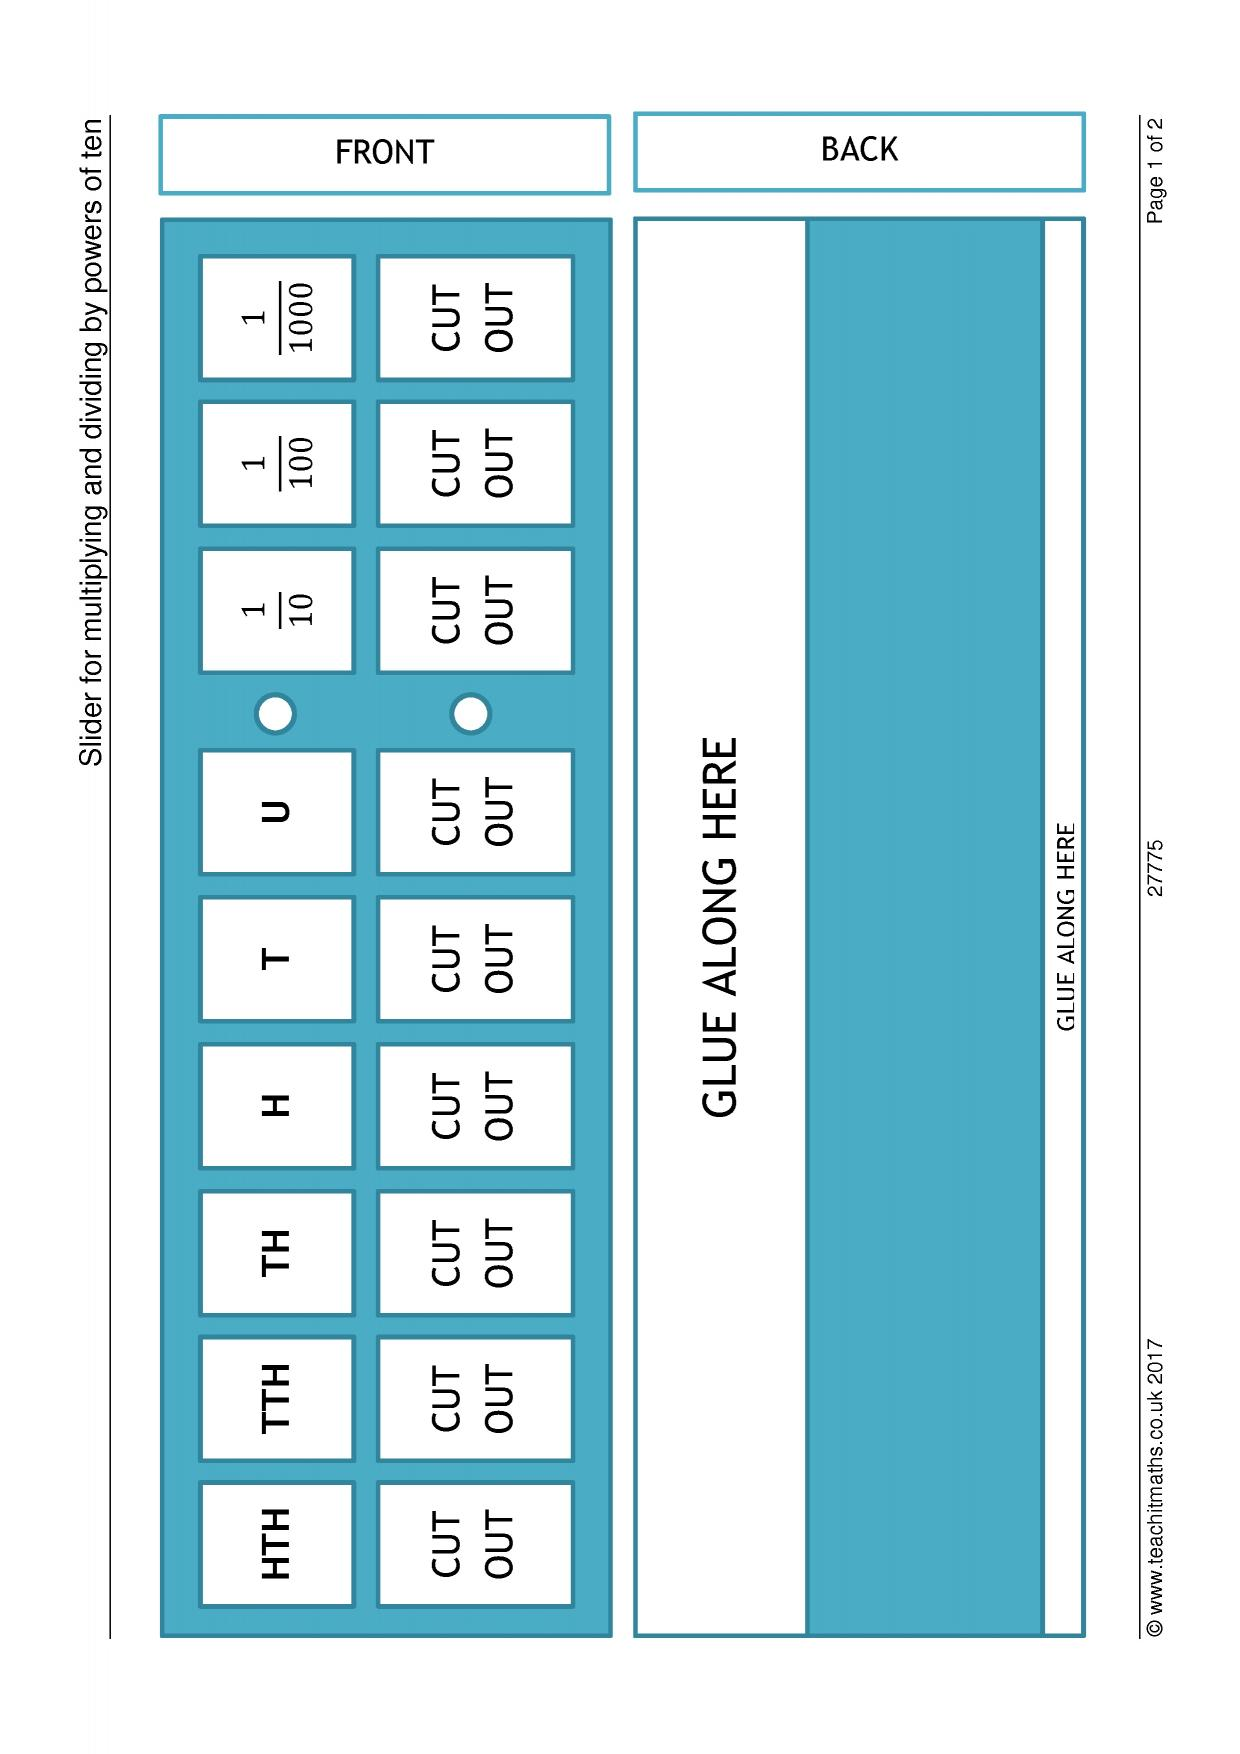 Slider For Multiplying And Dividing By Powers Of Ten